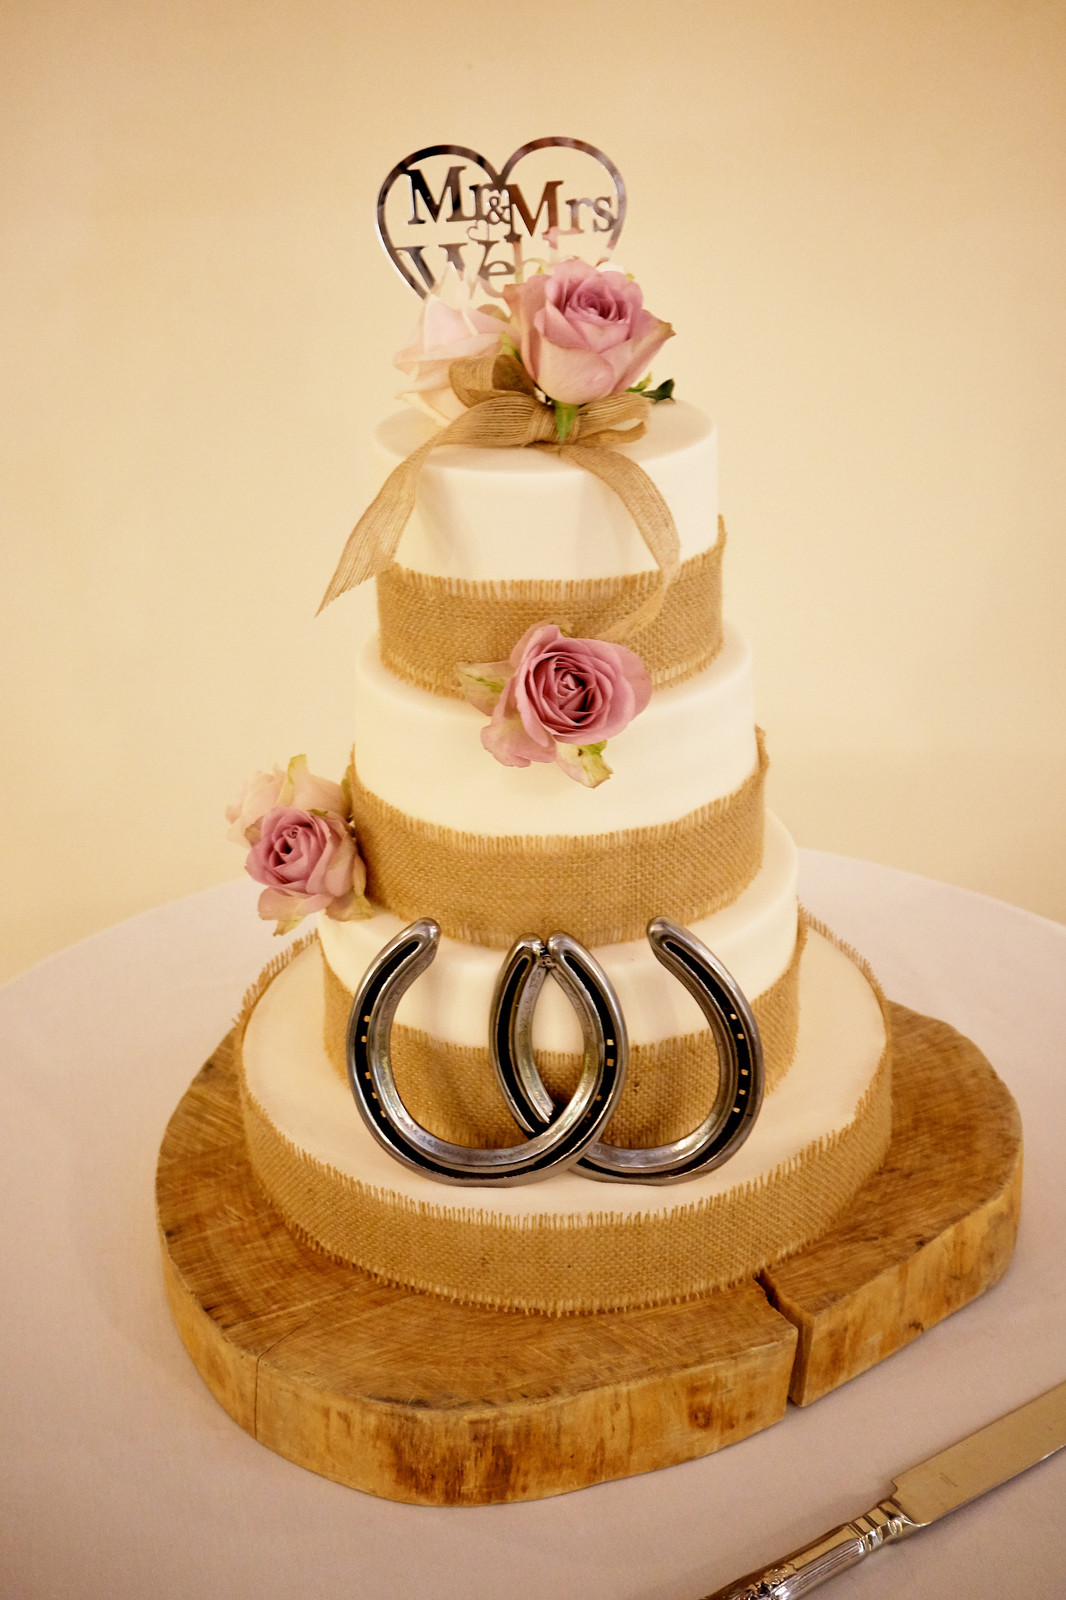 Cakes, Wedding cakes & Cupcakes | Hampshire | The Sweet Life Bakes